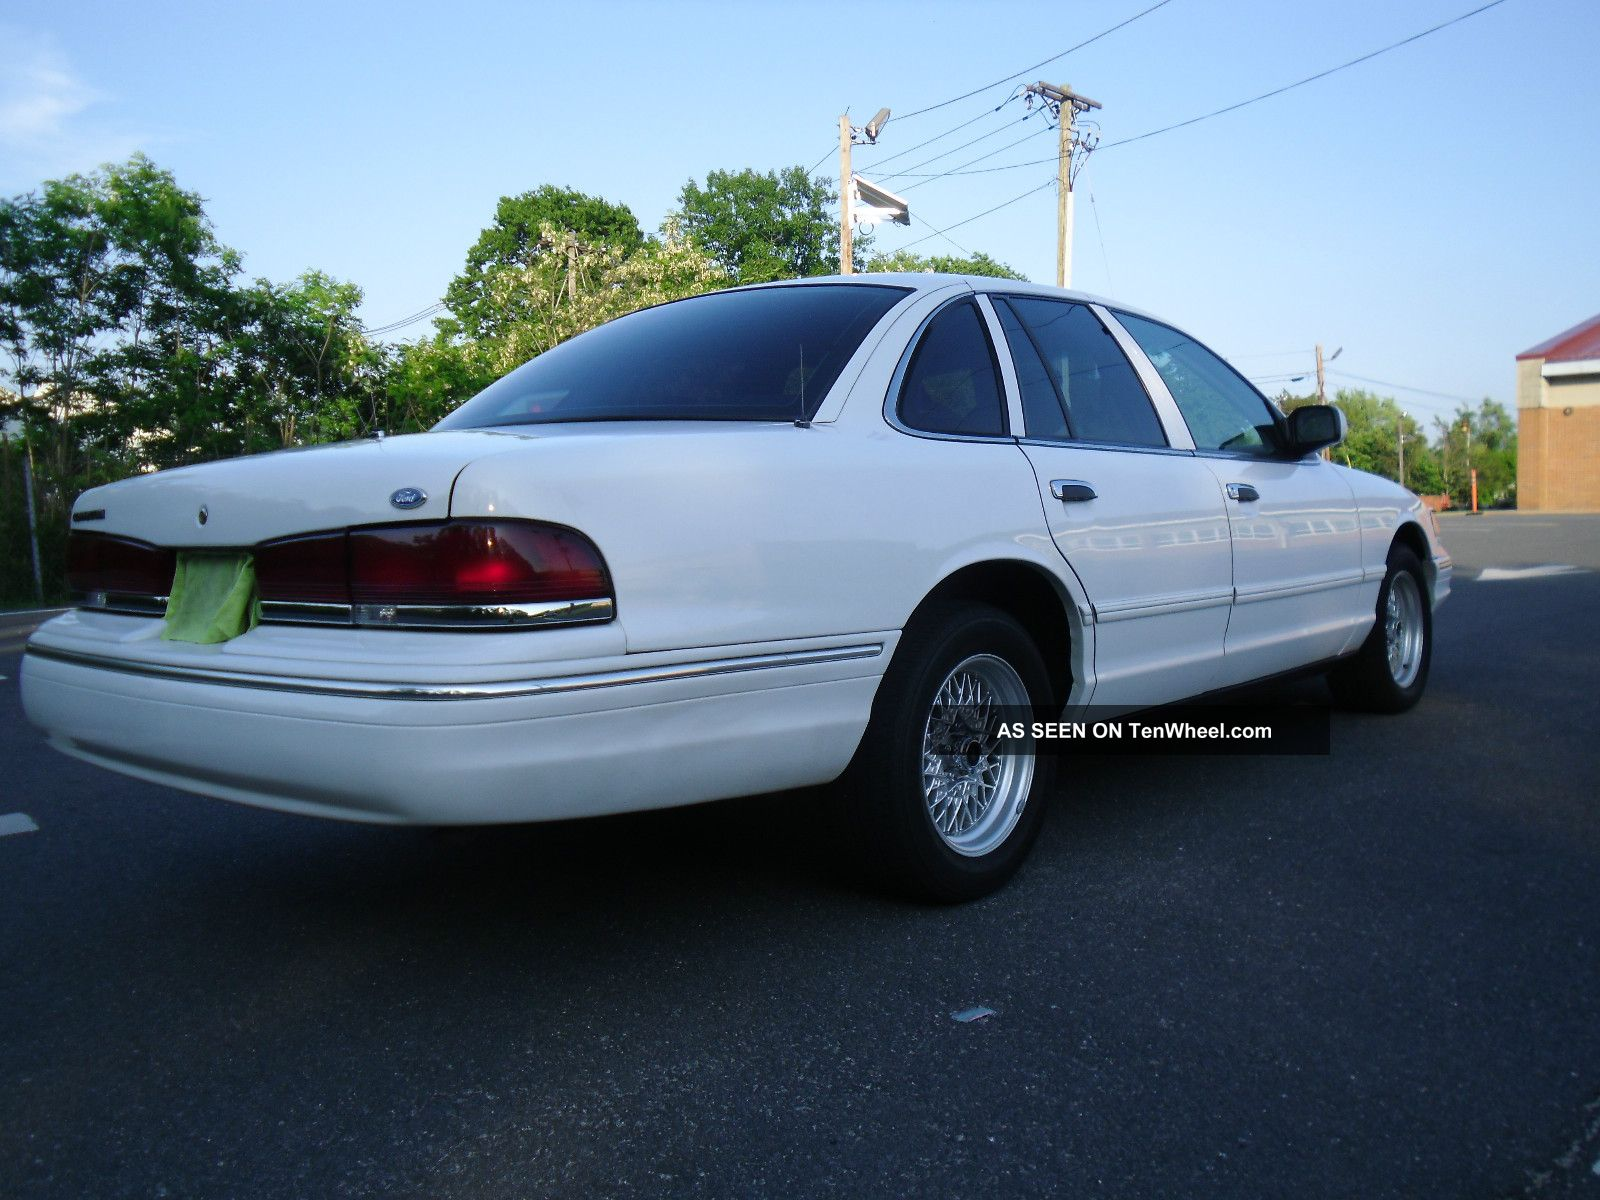 1996 ford crown victoria 88k title crown vic police interceptor nj cheap. Black Bedroom Furniture Sets. Home Design Ideas